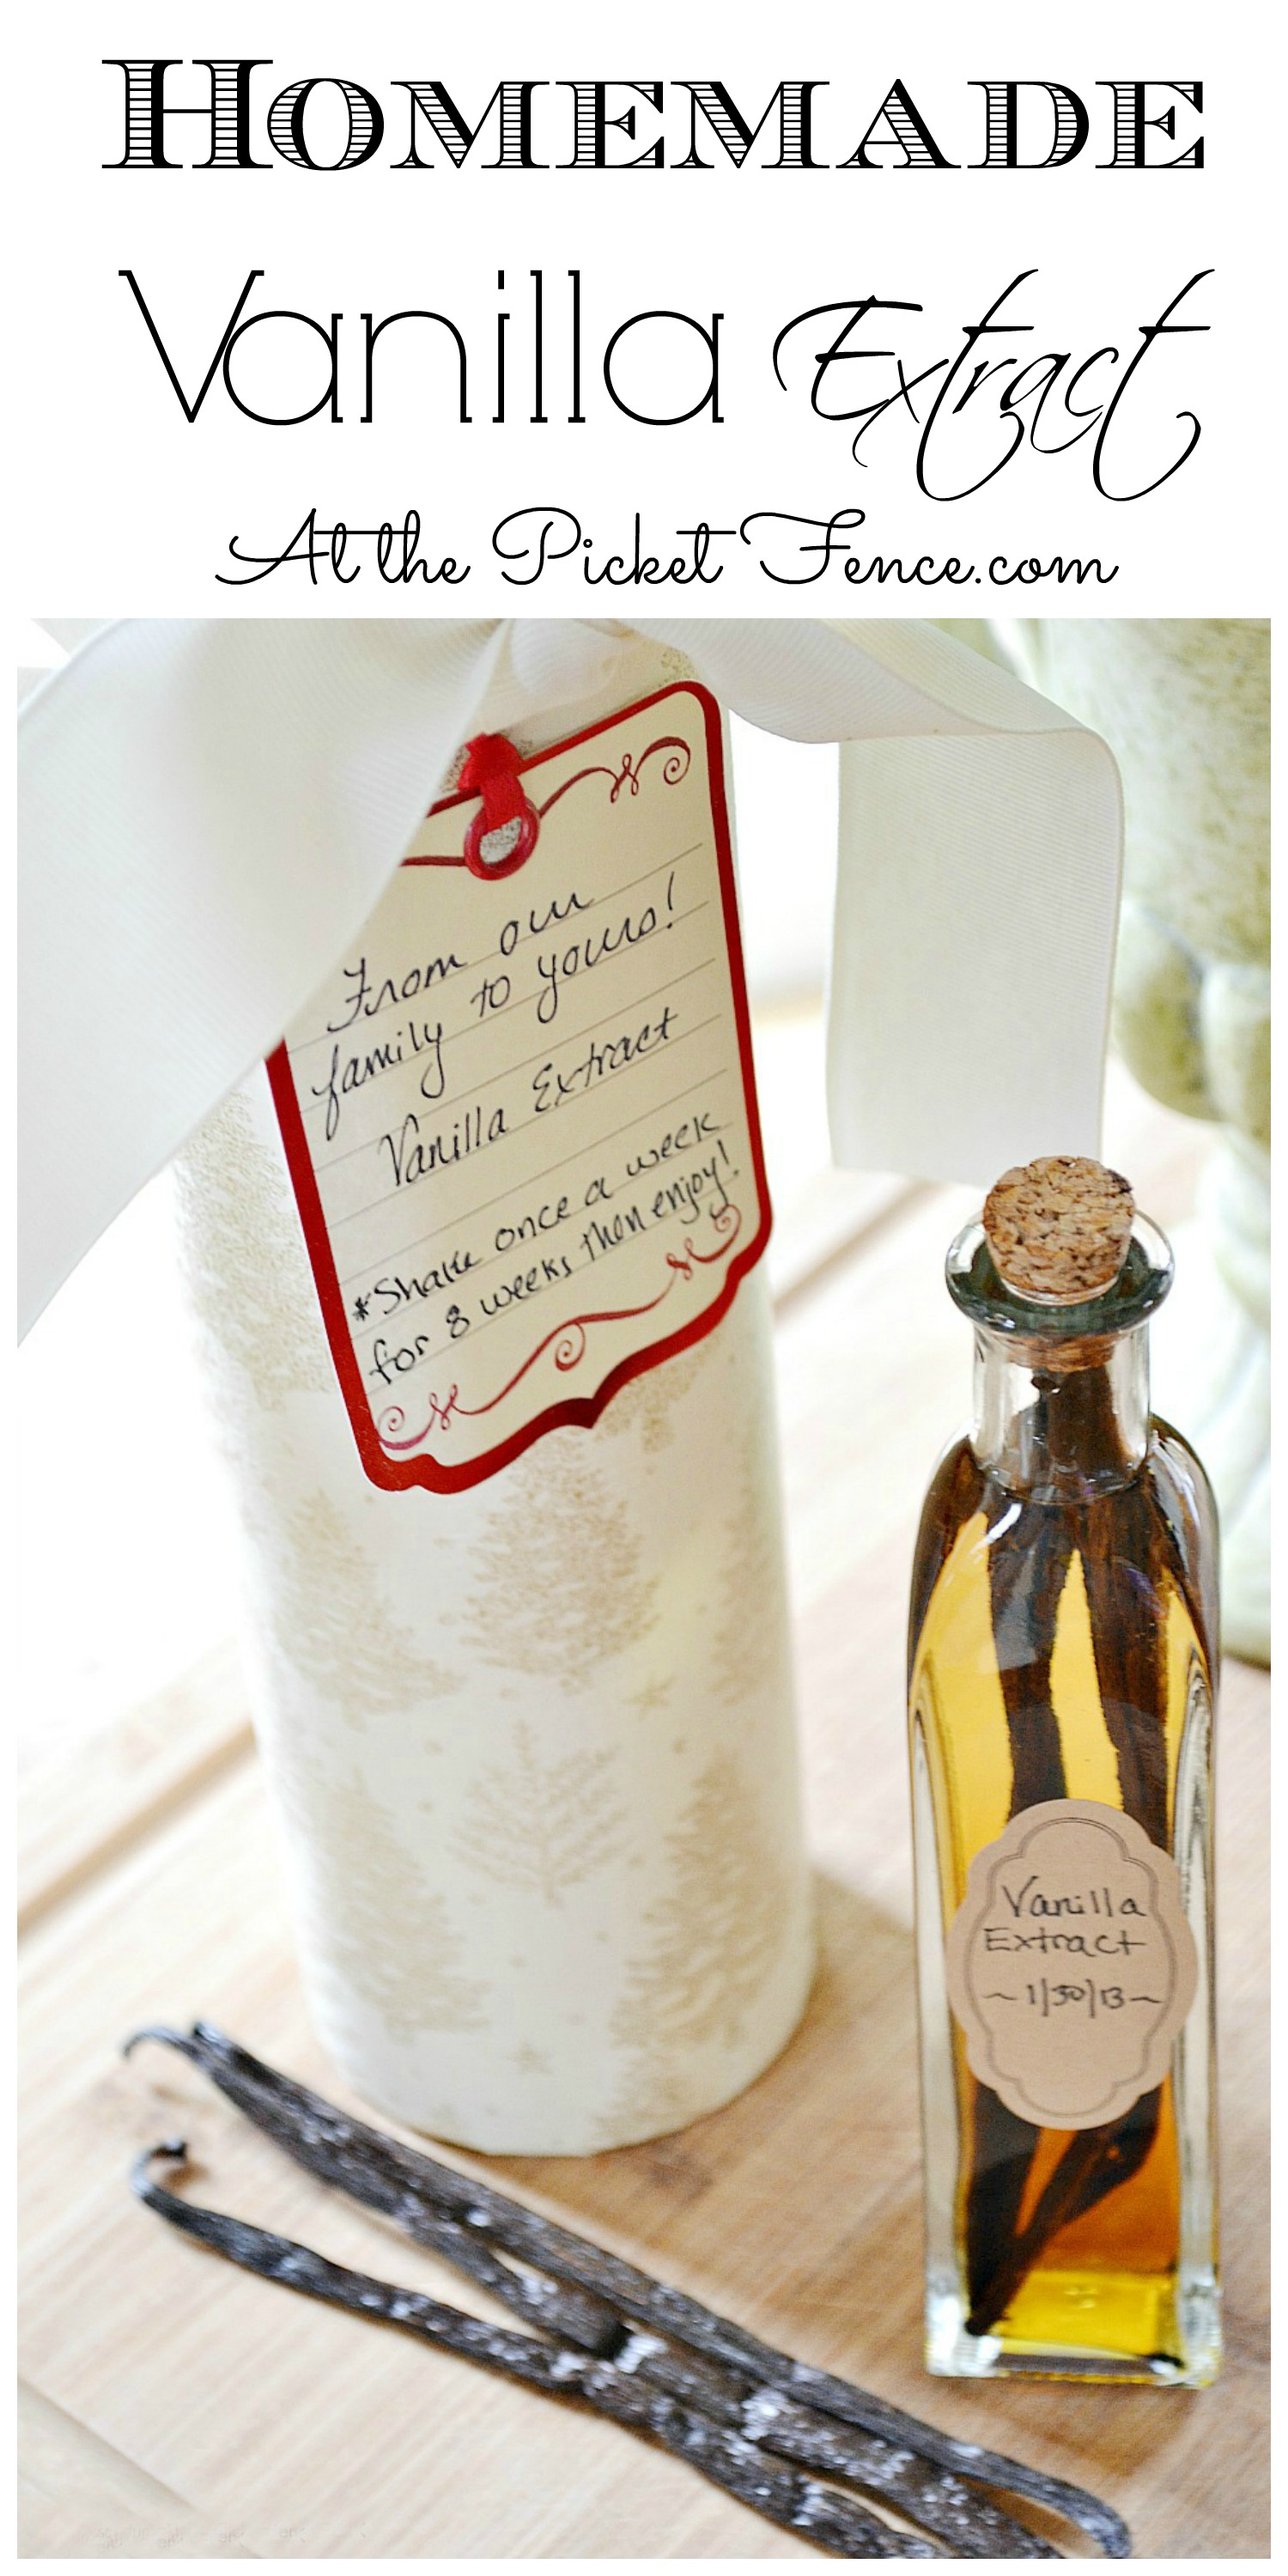 Homemade Vanilla Extract & Creative Gift Packaging